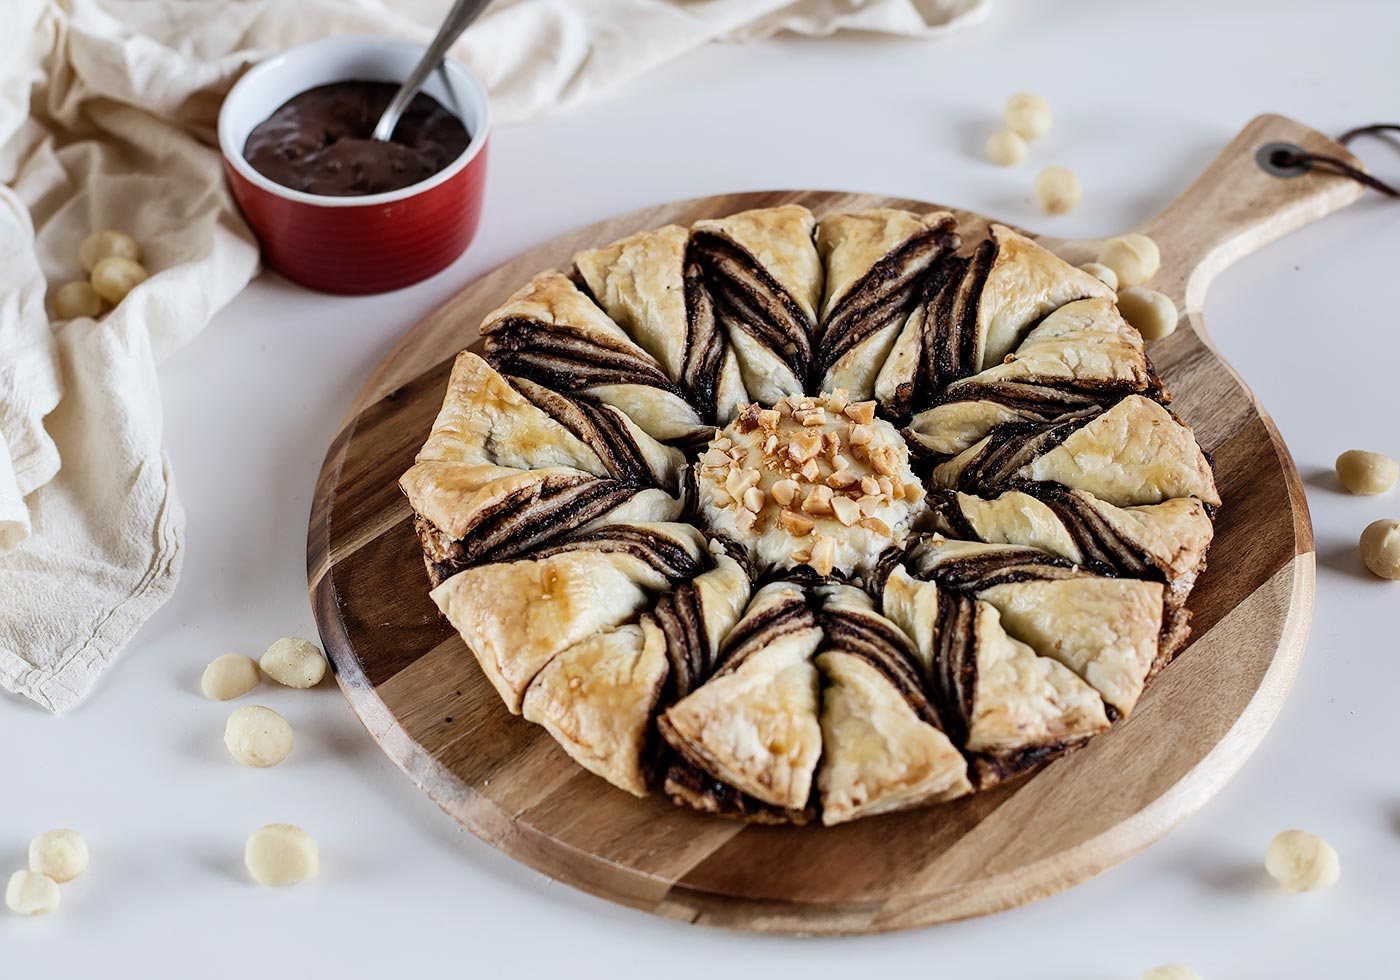 macadamia-chocolate-star-pastry7